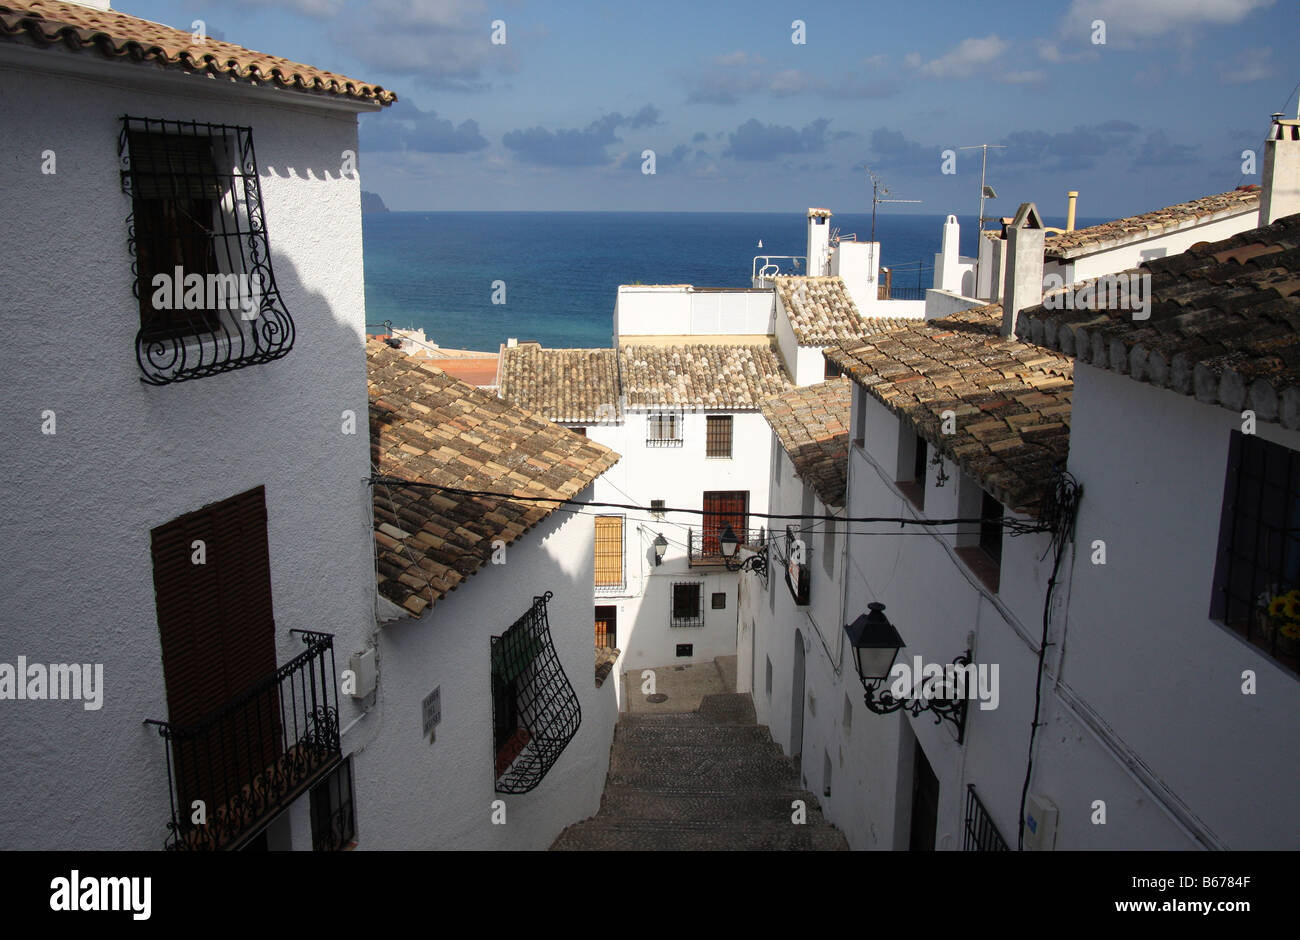 Whitewashed house-fronts and tiled roofs looking out onto the Mediterranean sea in Altea, Spain - Stock Image